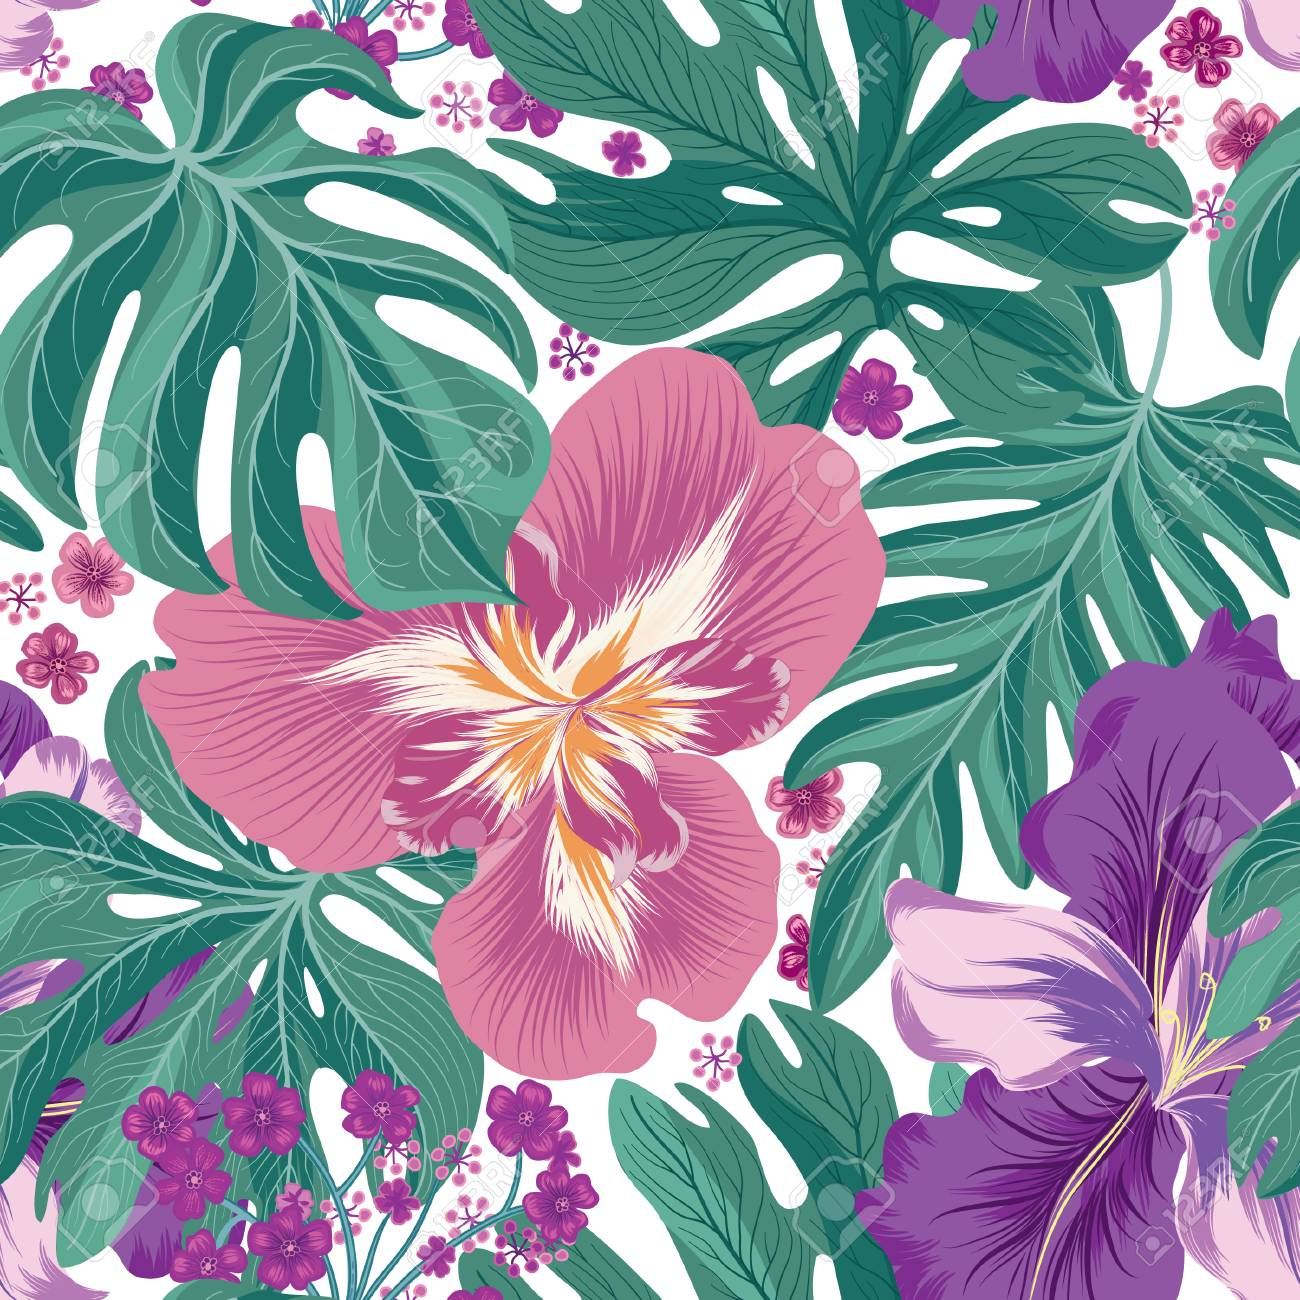 Tropcal Flowers And Palm Leaves Seamless Pattern Beautiful Floral